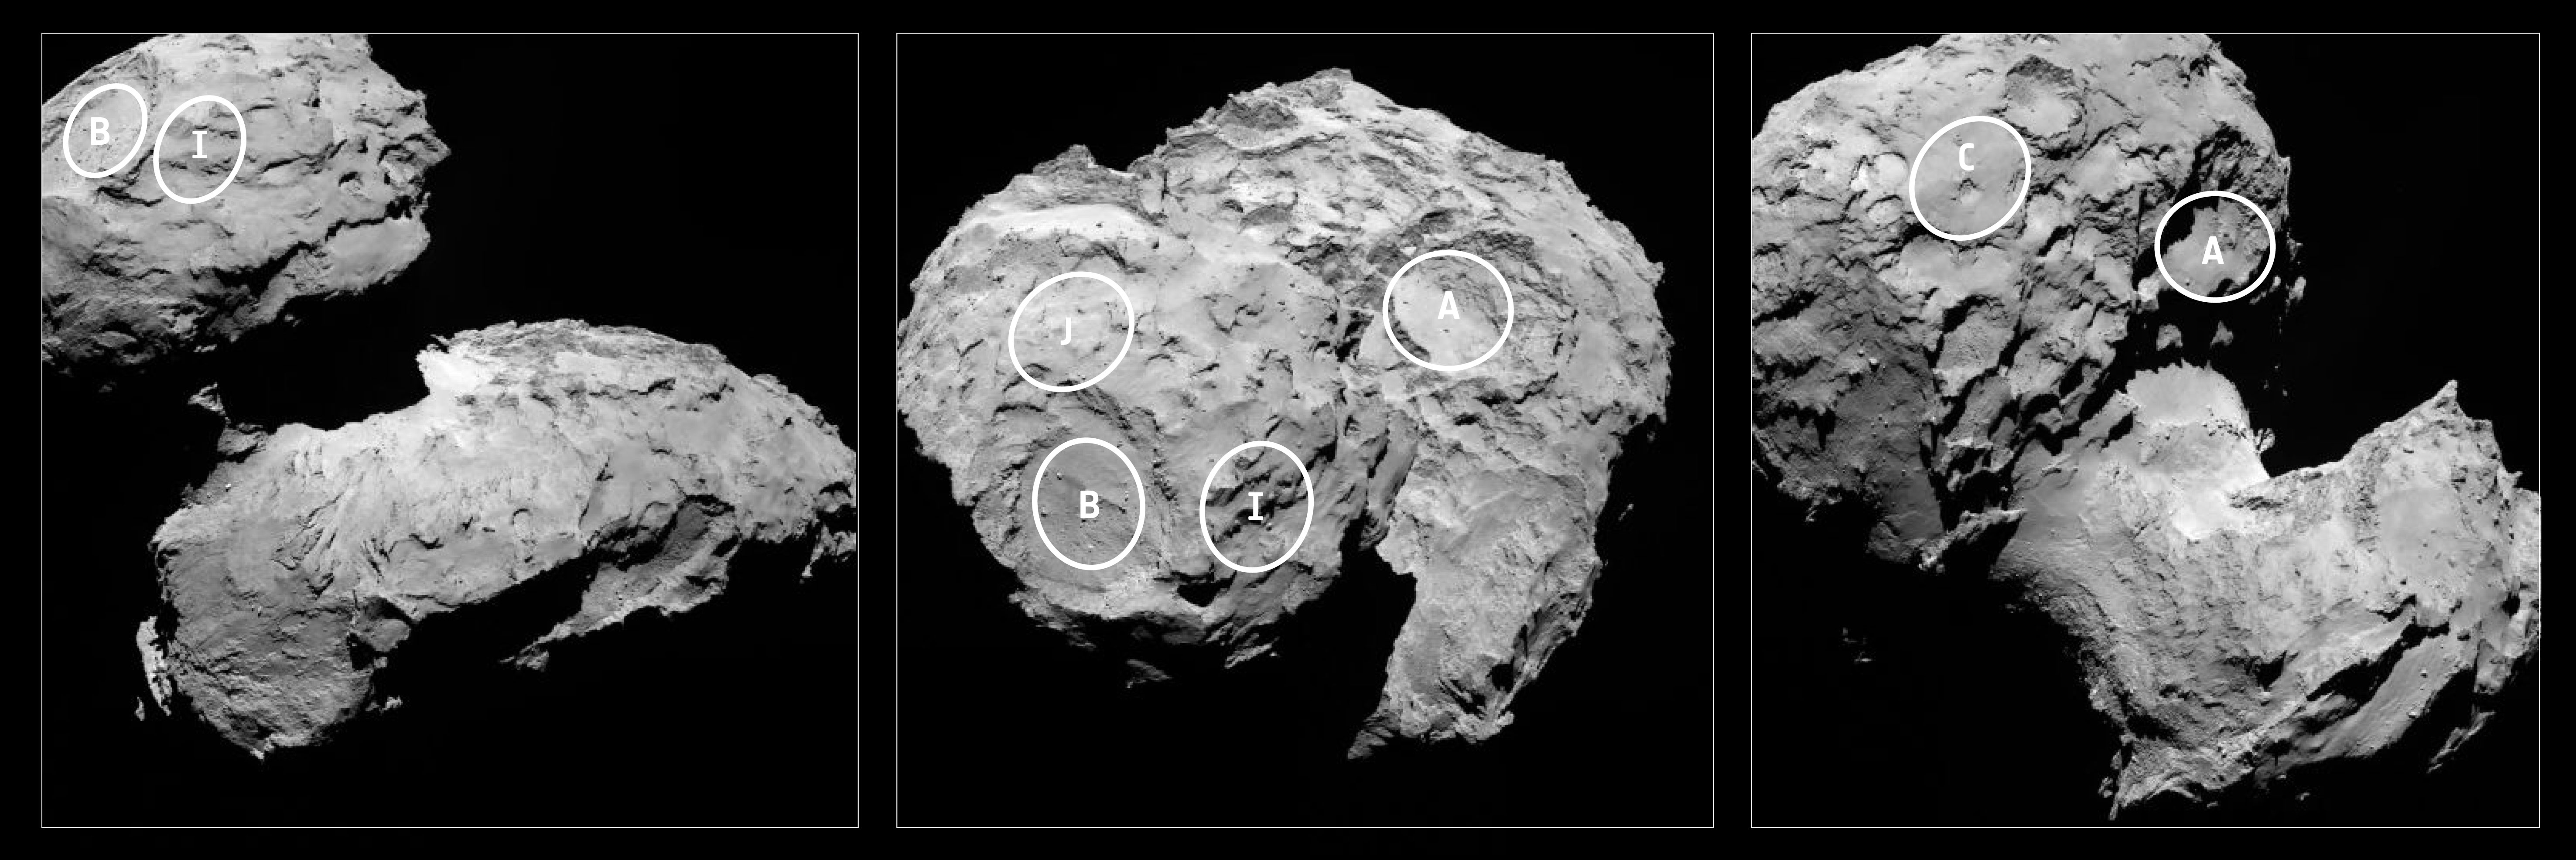 Five candidate sites (from an initial selection of 10 possible sites) were identified for landing of the Philae probe. The approximate locations of the five regions are marked on these OSIRIS narrow-angle camera images taken on 16 August from a distance of about 100 km. Credit: ESA/Rosetta/MPS for OSIRIS Team